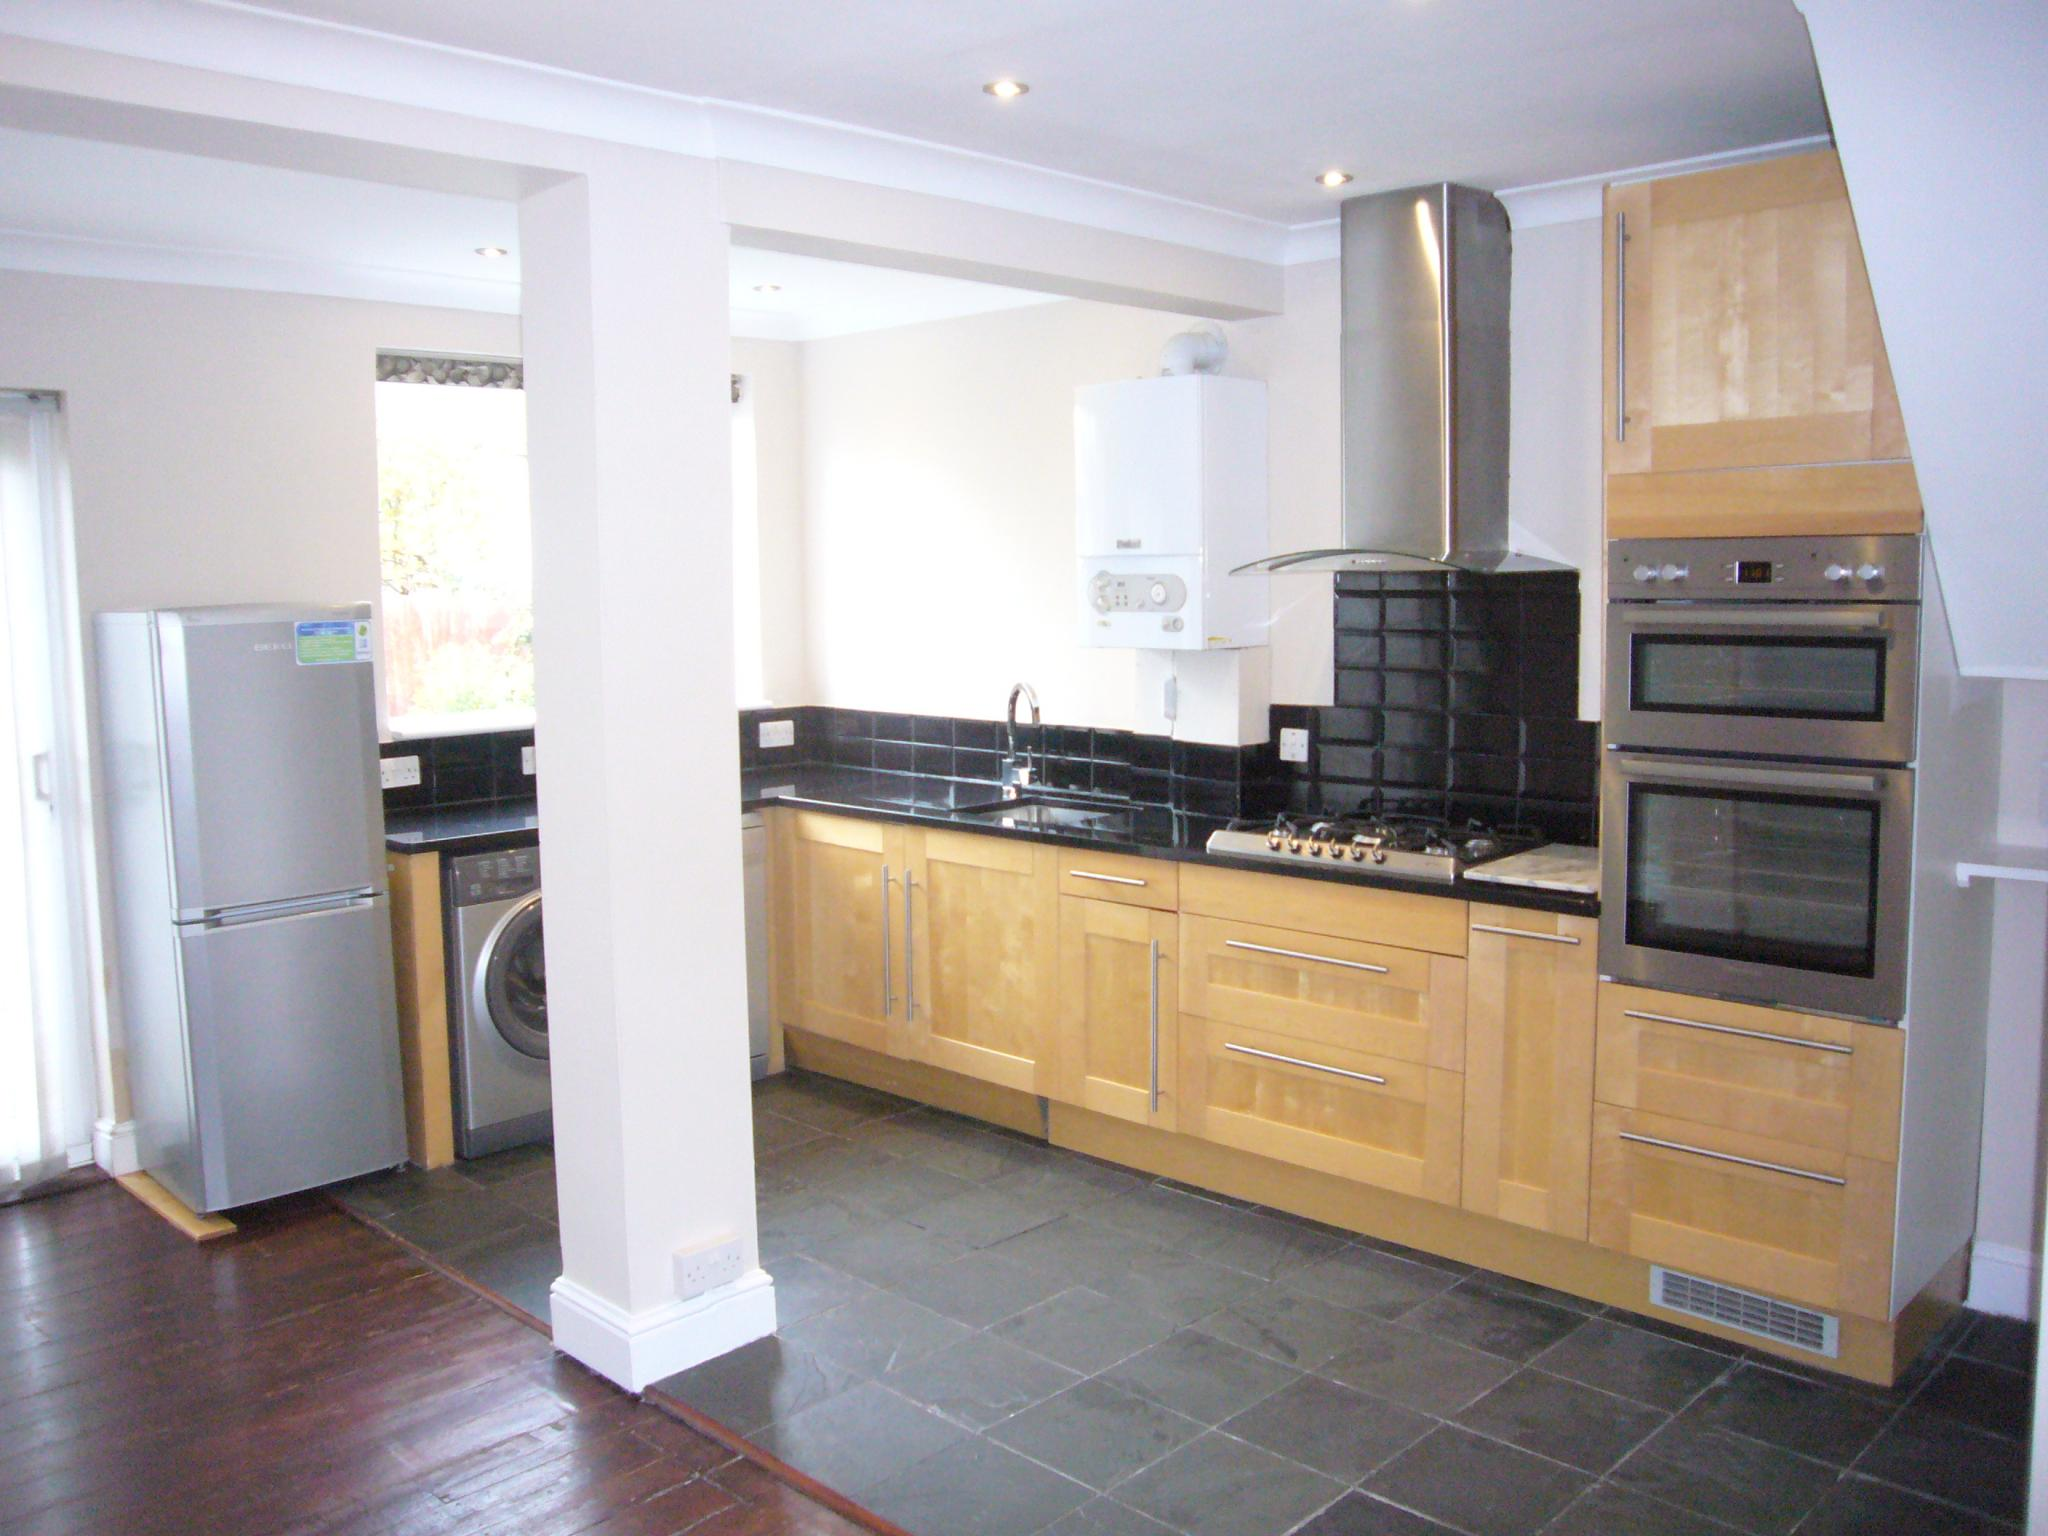 3 bedroom semi-detached house Let Agreed in Worcester Park - Photograph 6.